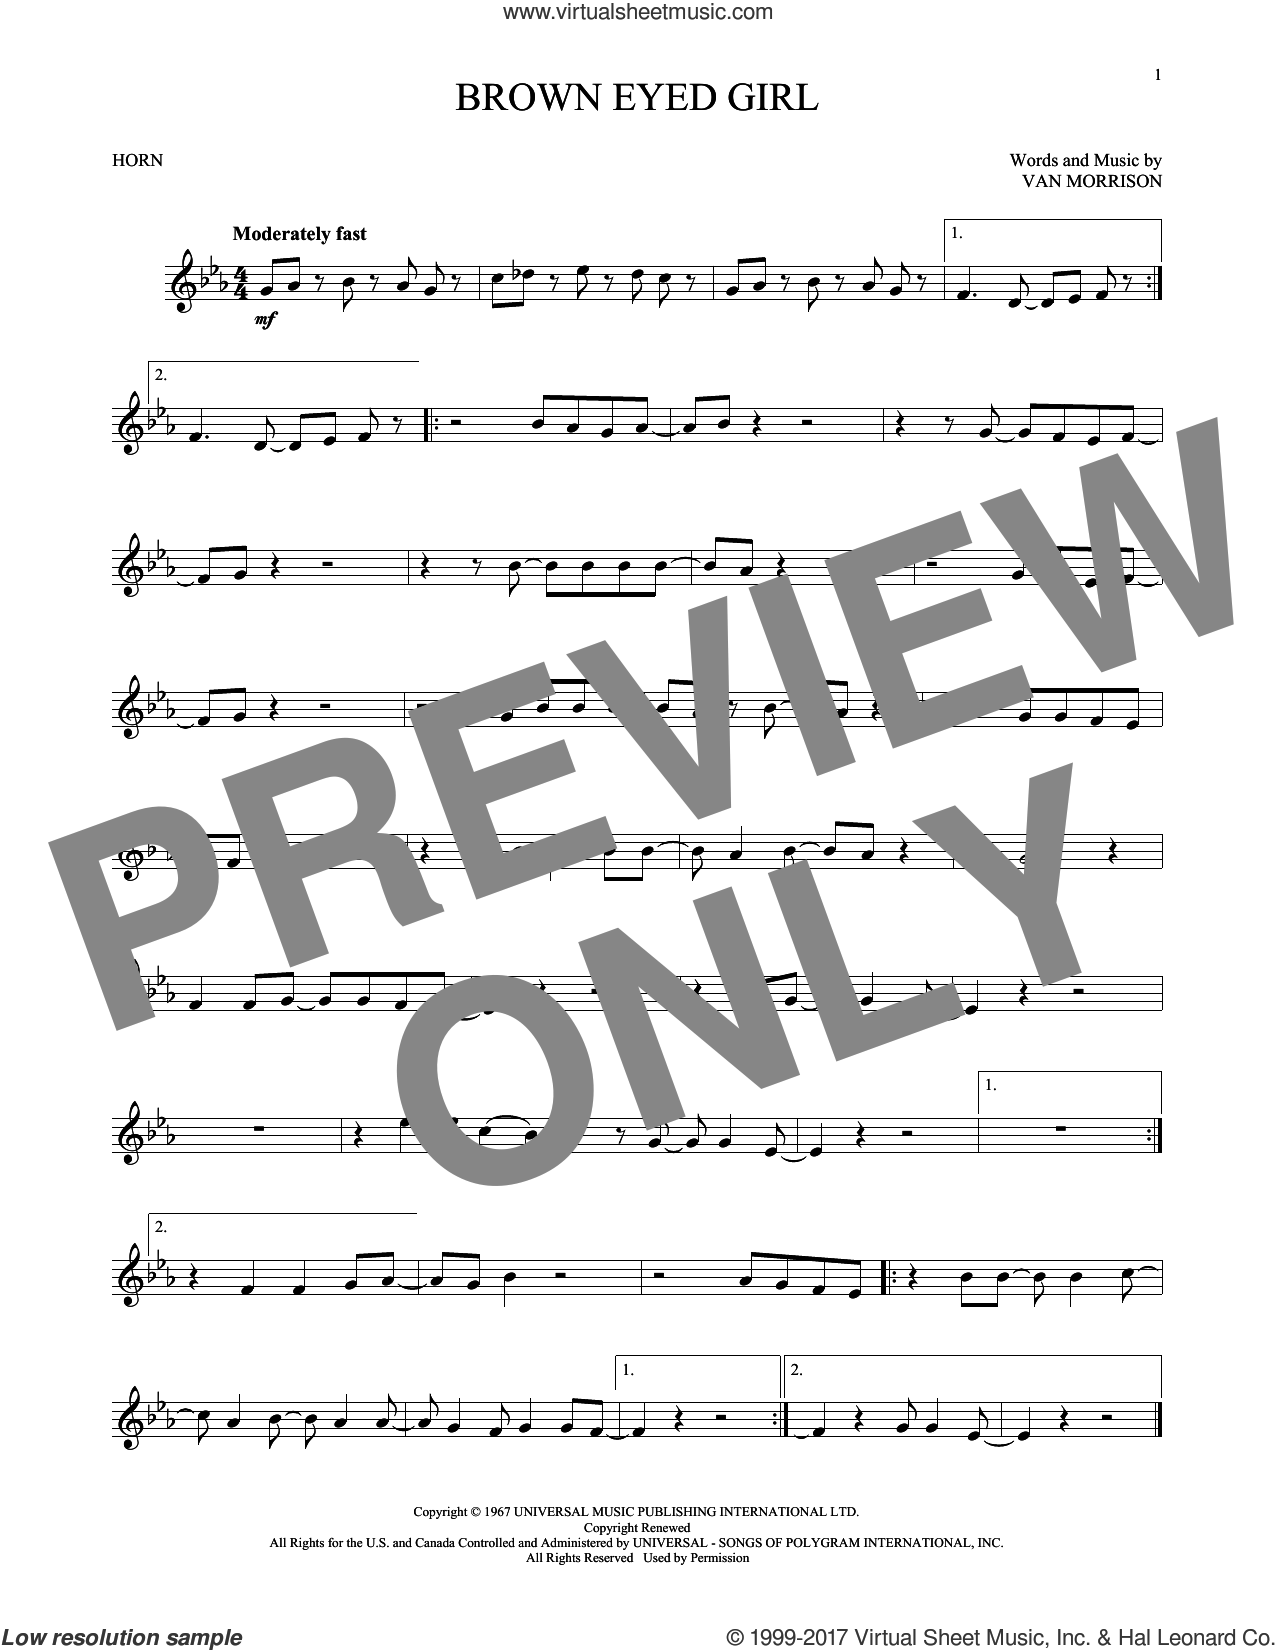 Brown Eyed Girl sheet music for horn solo by Van Morrison, intermediate